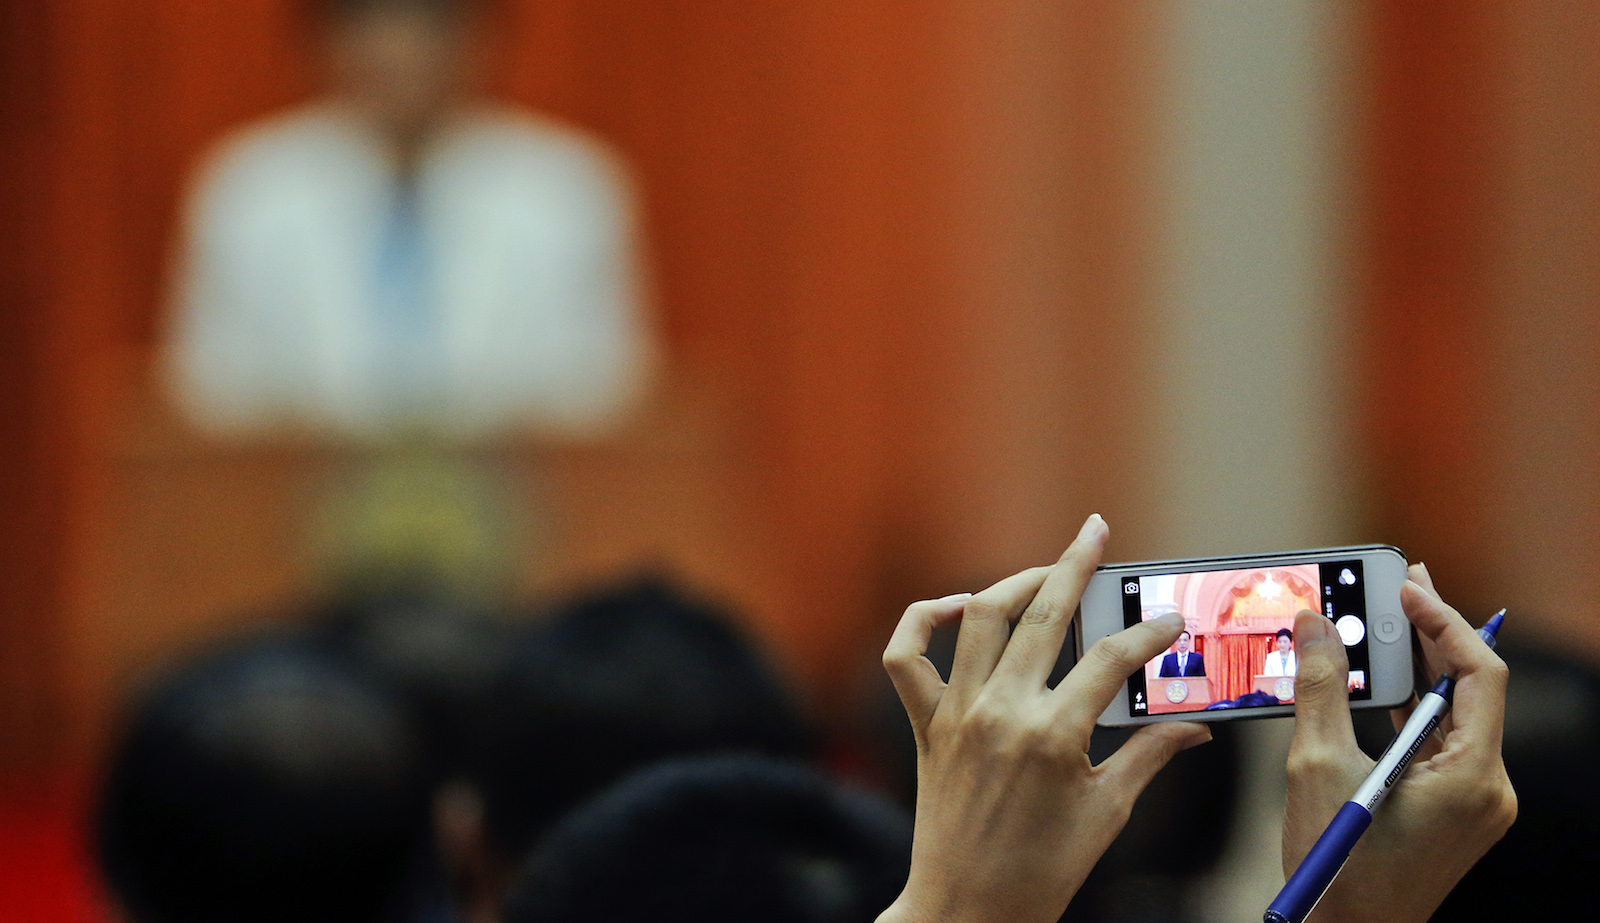 A reporter takes pictures of Thailand's Prime Minister Yingluck Shinawatra and China's Premier Li Keqiang as they address the press at the government house in Bangkok October 11, 2013.